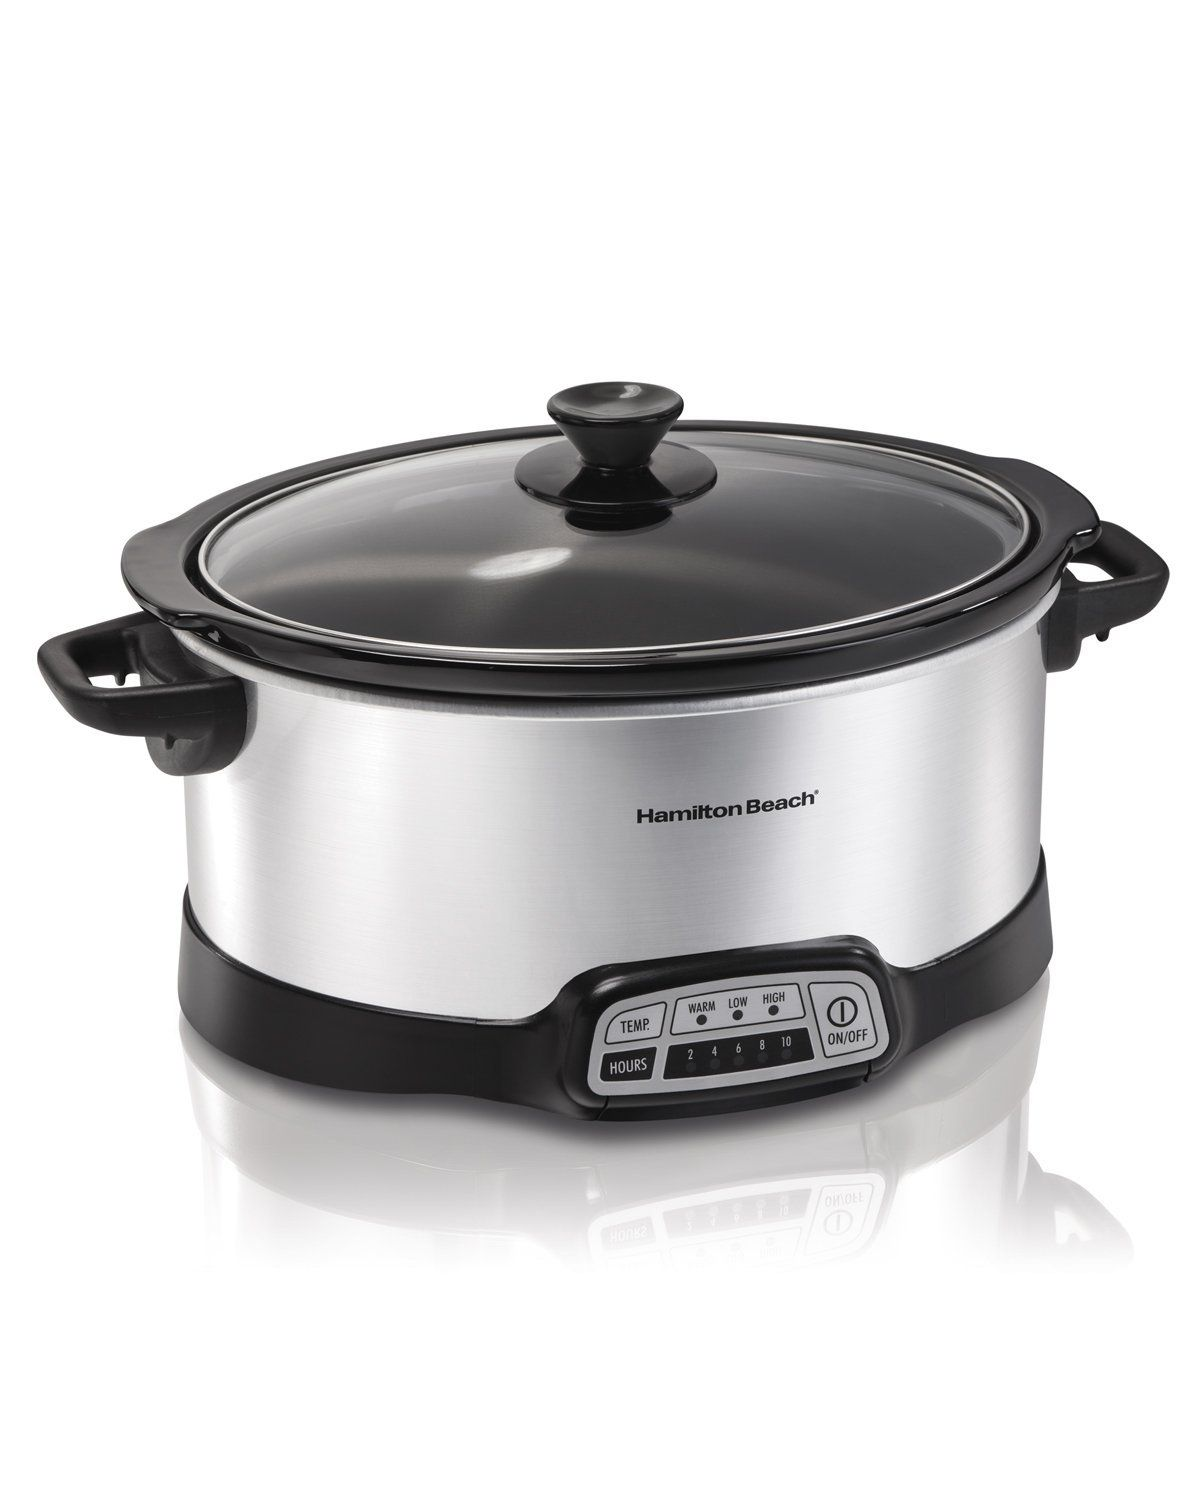 Amazon.com: Hamilton Beach 33473 Programmable Slow Cooker, 7-Quart, Silver…